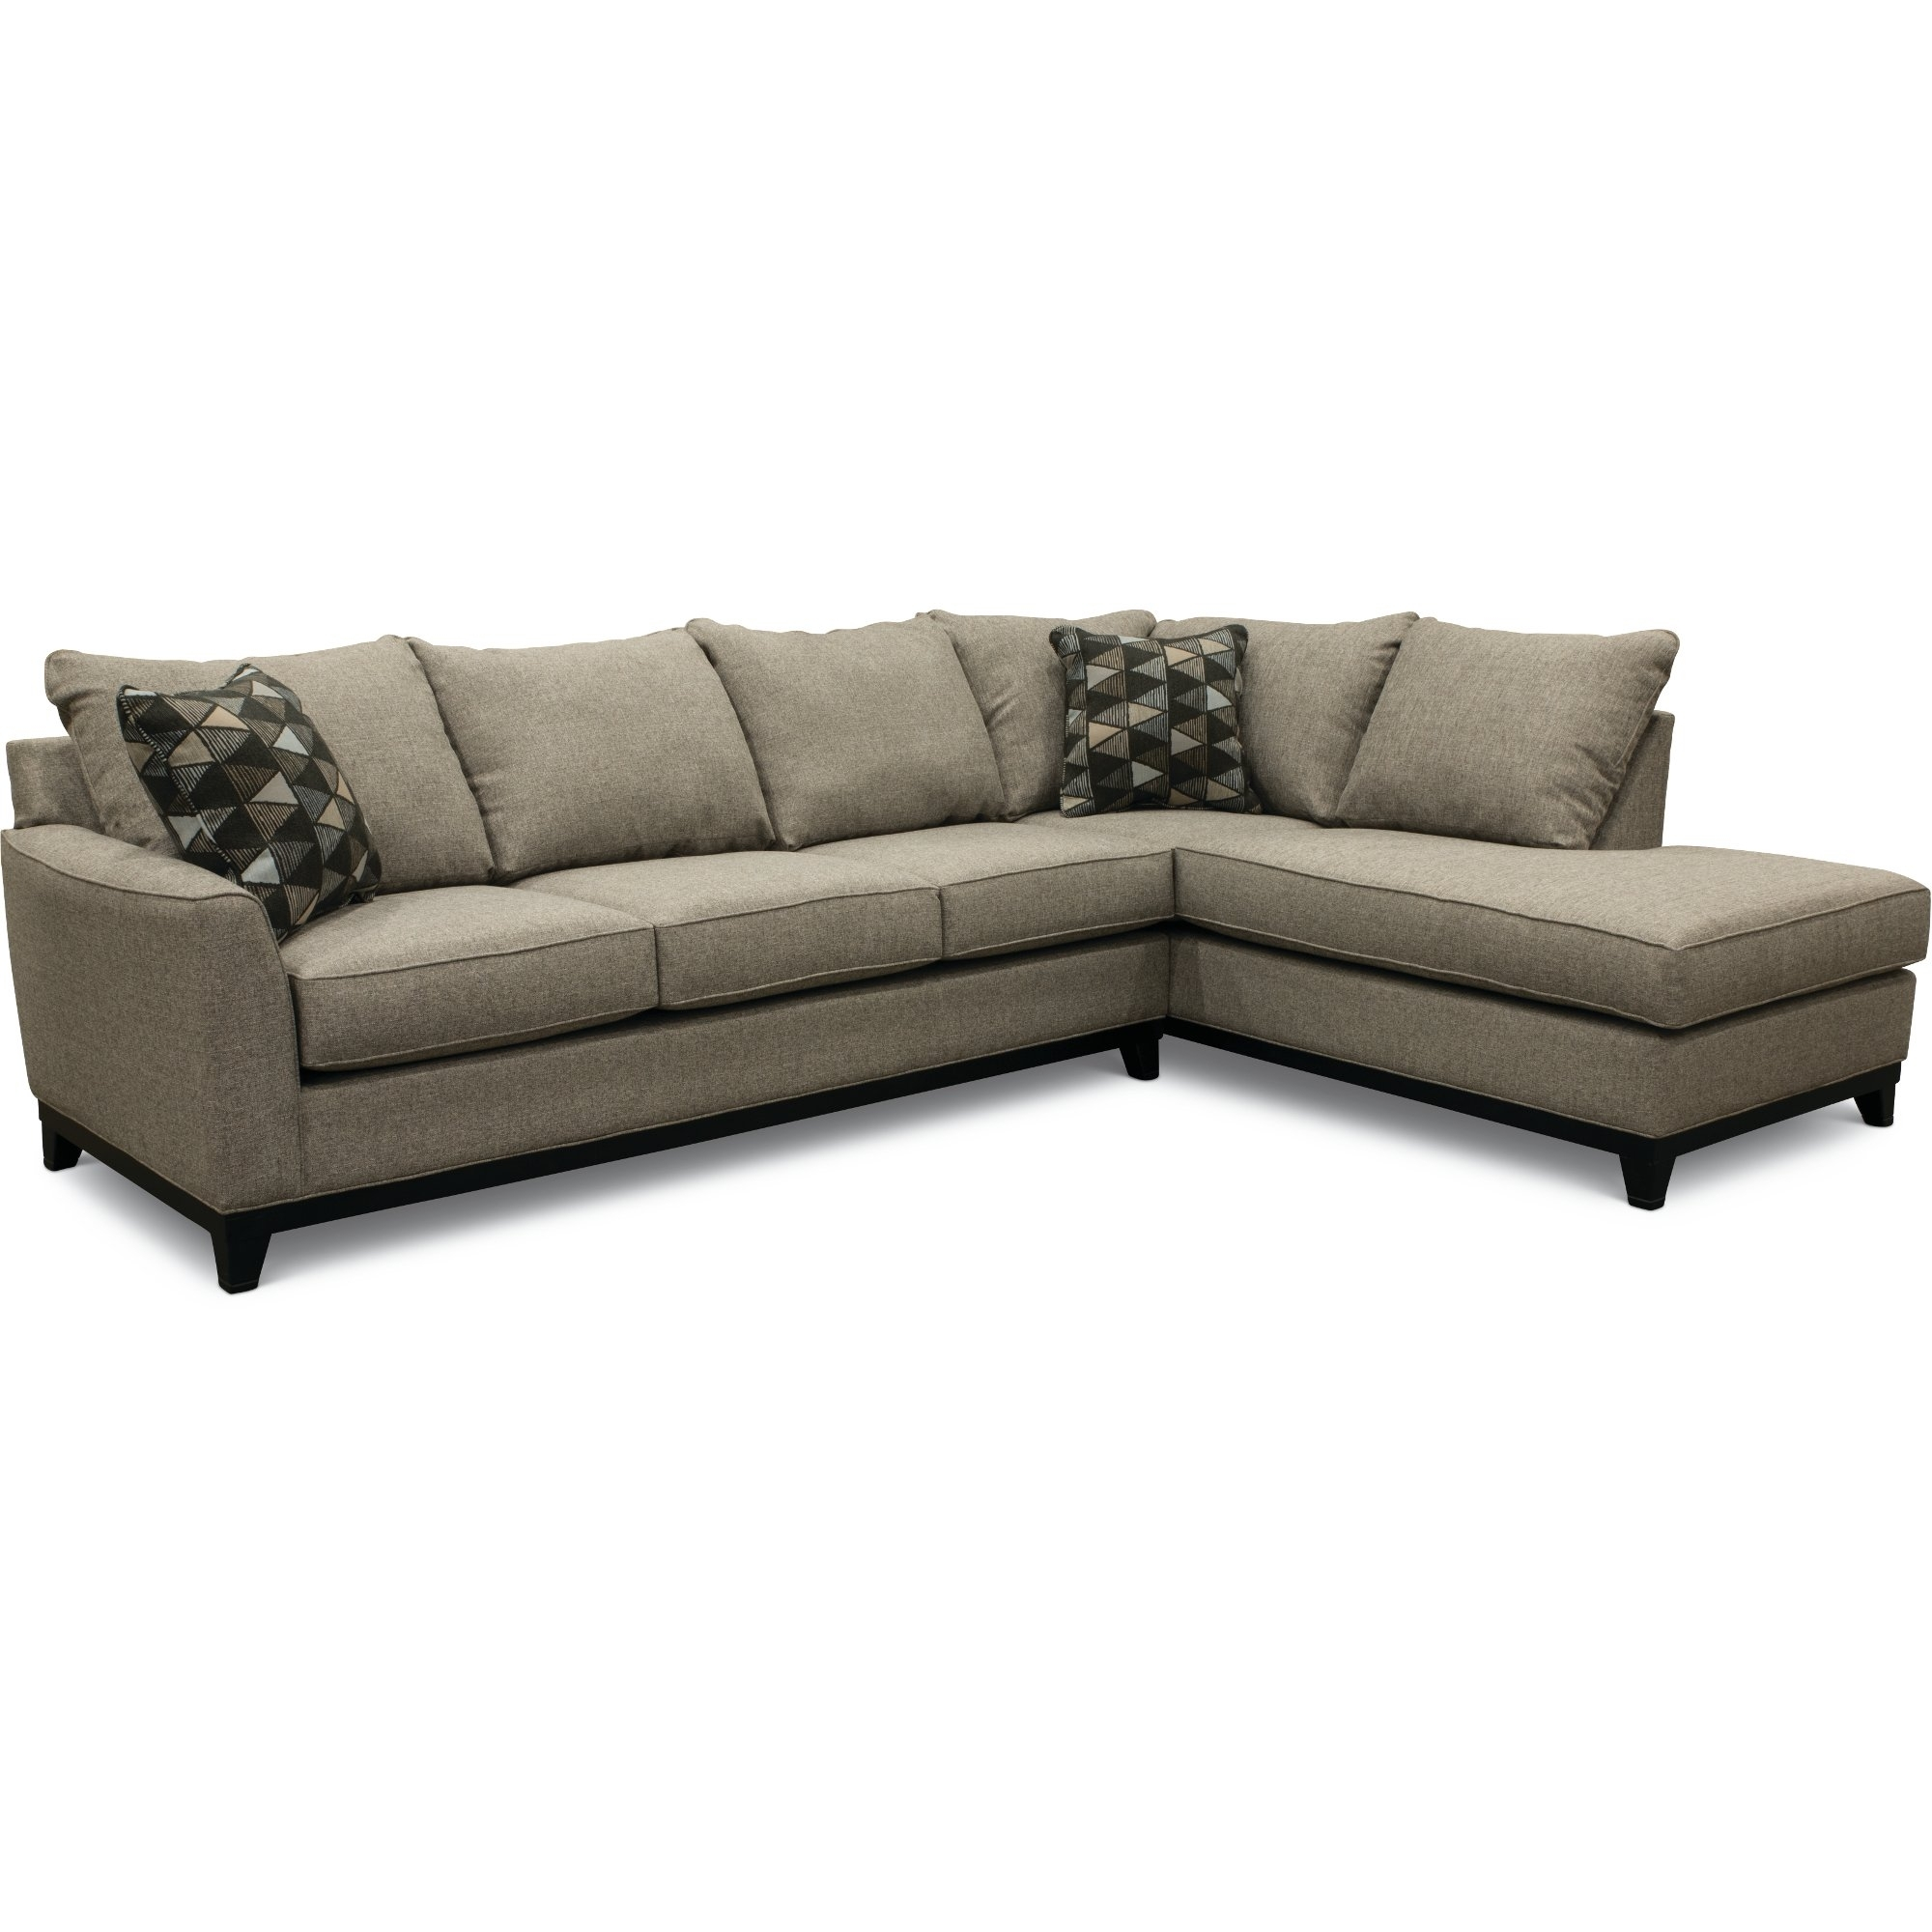 Casual Contemporary Slate Gray 2 Piece Sectional – Emerson With Aidan 4 Piece Sectionals (View 17 of 25)